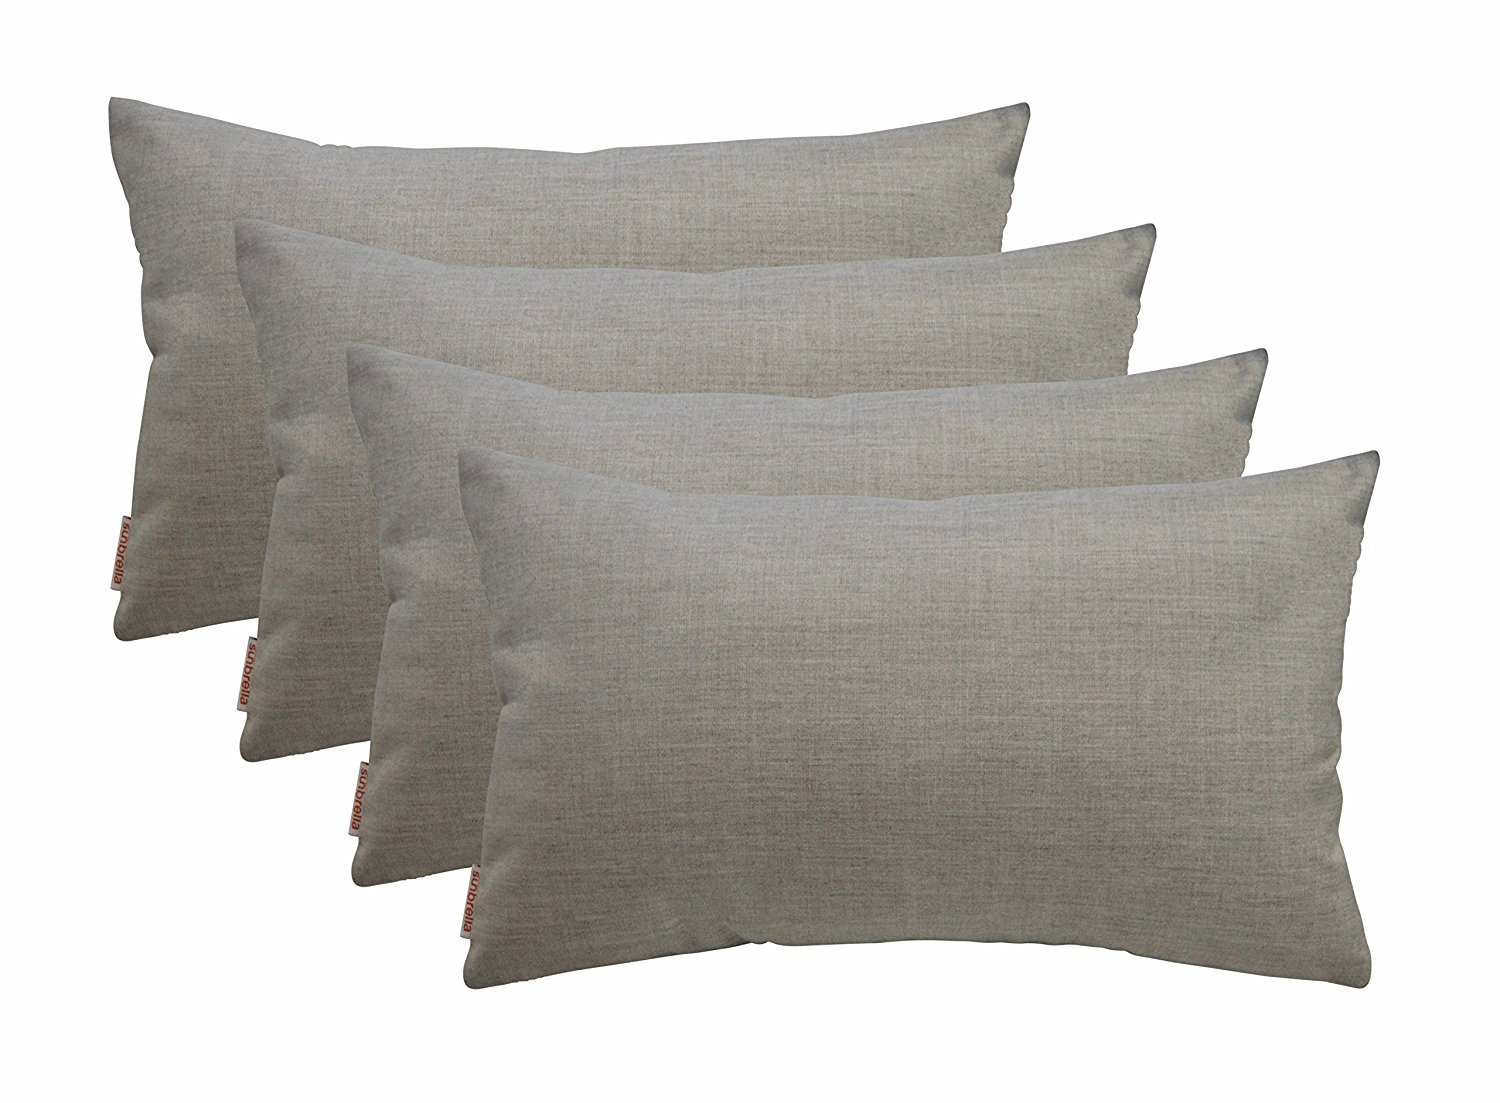 RSH Décor Set of 4 Indoor/Outdoor Decorative Throw Pillows Sunbrella Cast Silver - 12'' x 20''